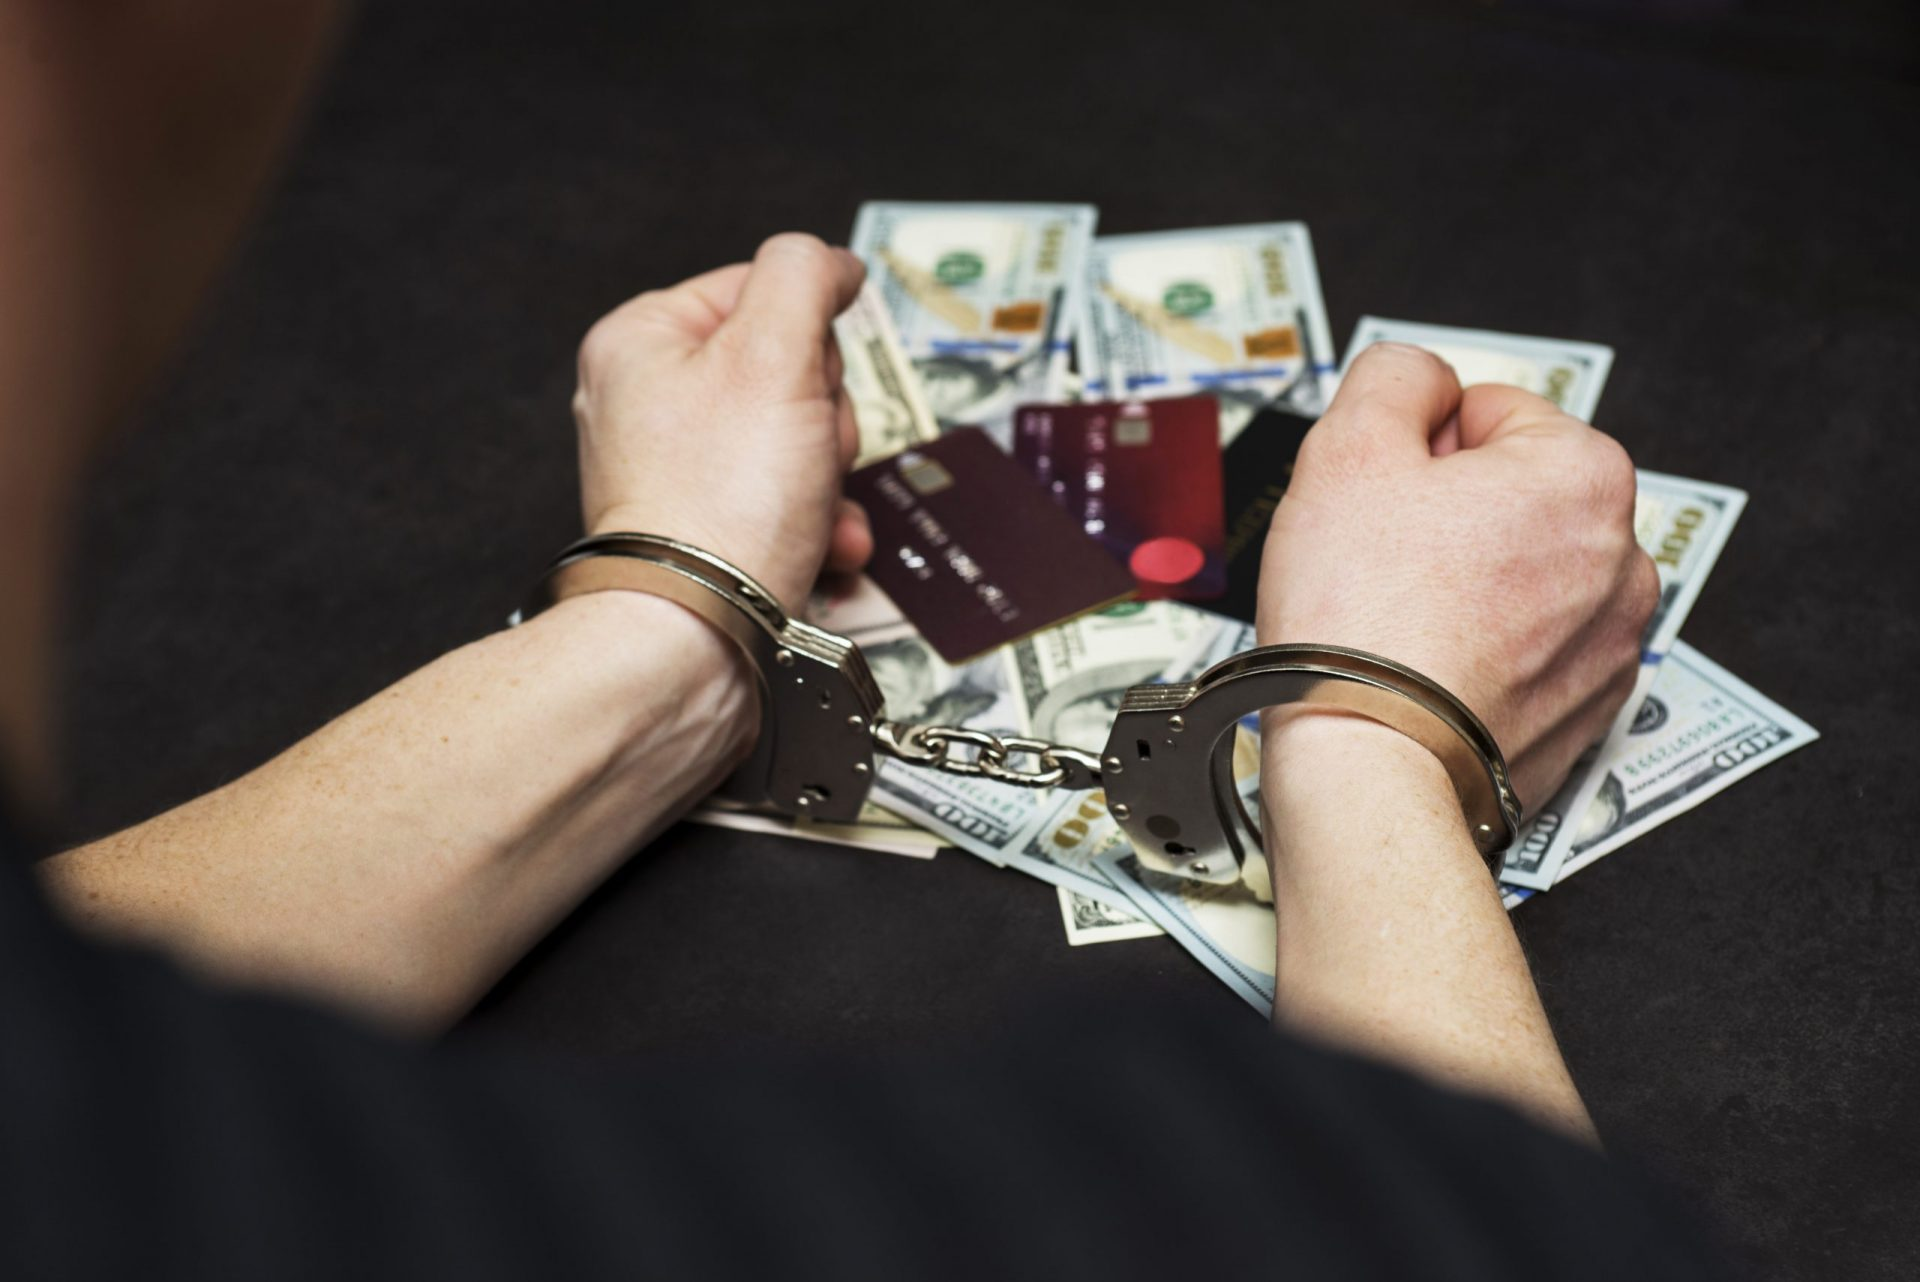 Hands of a fraudster with handcuffs on a background of us dollars and credit cards. Fraud, cyber crime concept